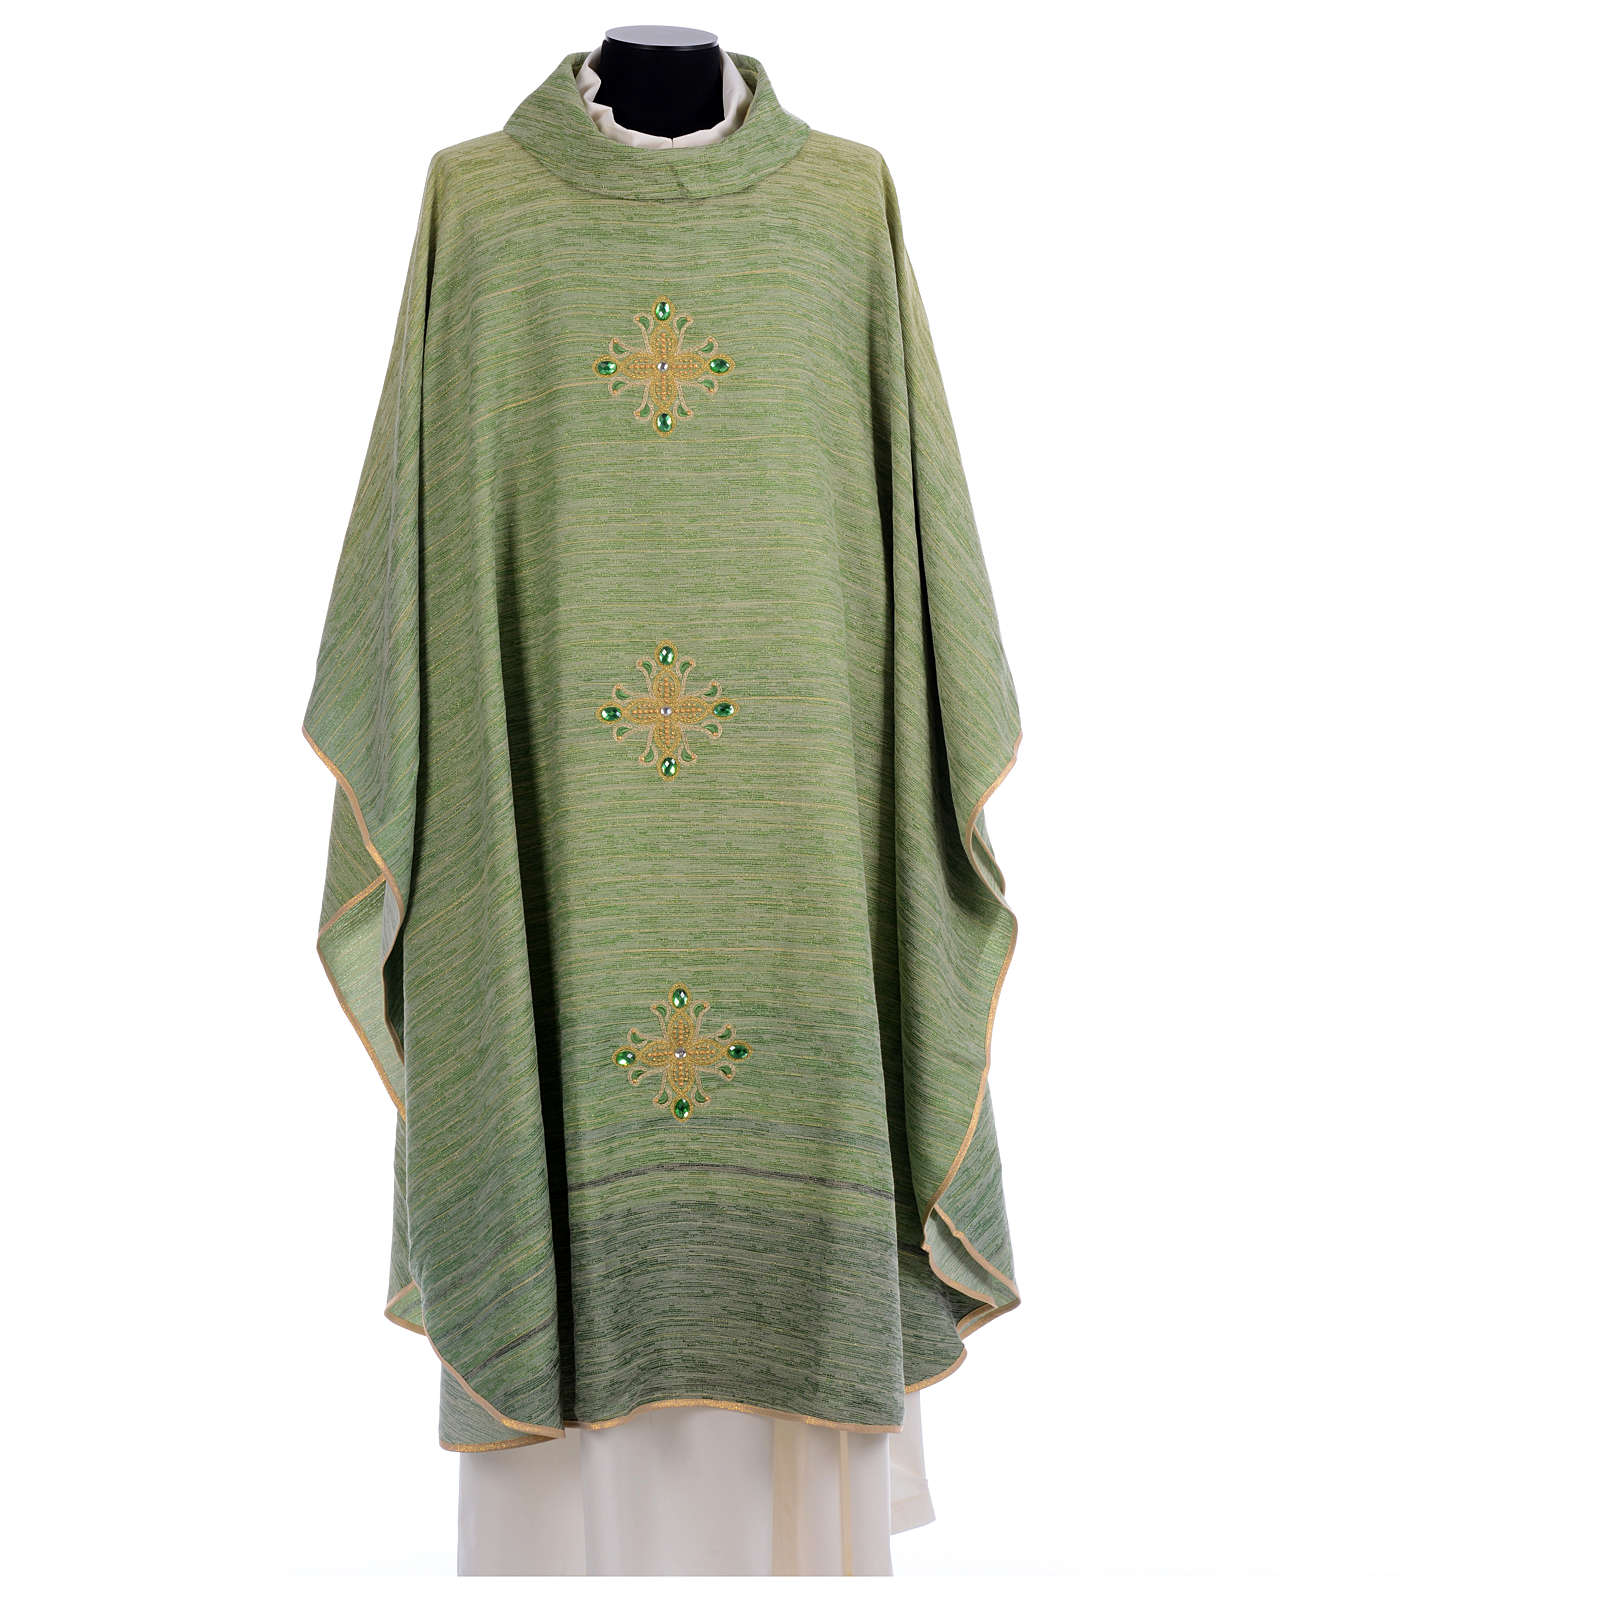 Catholic Chasuble Embroidered with Crosses 4